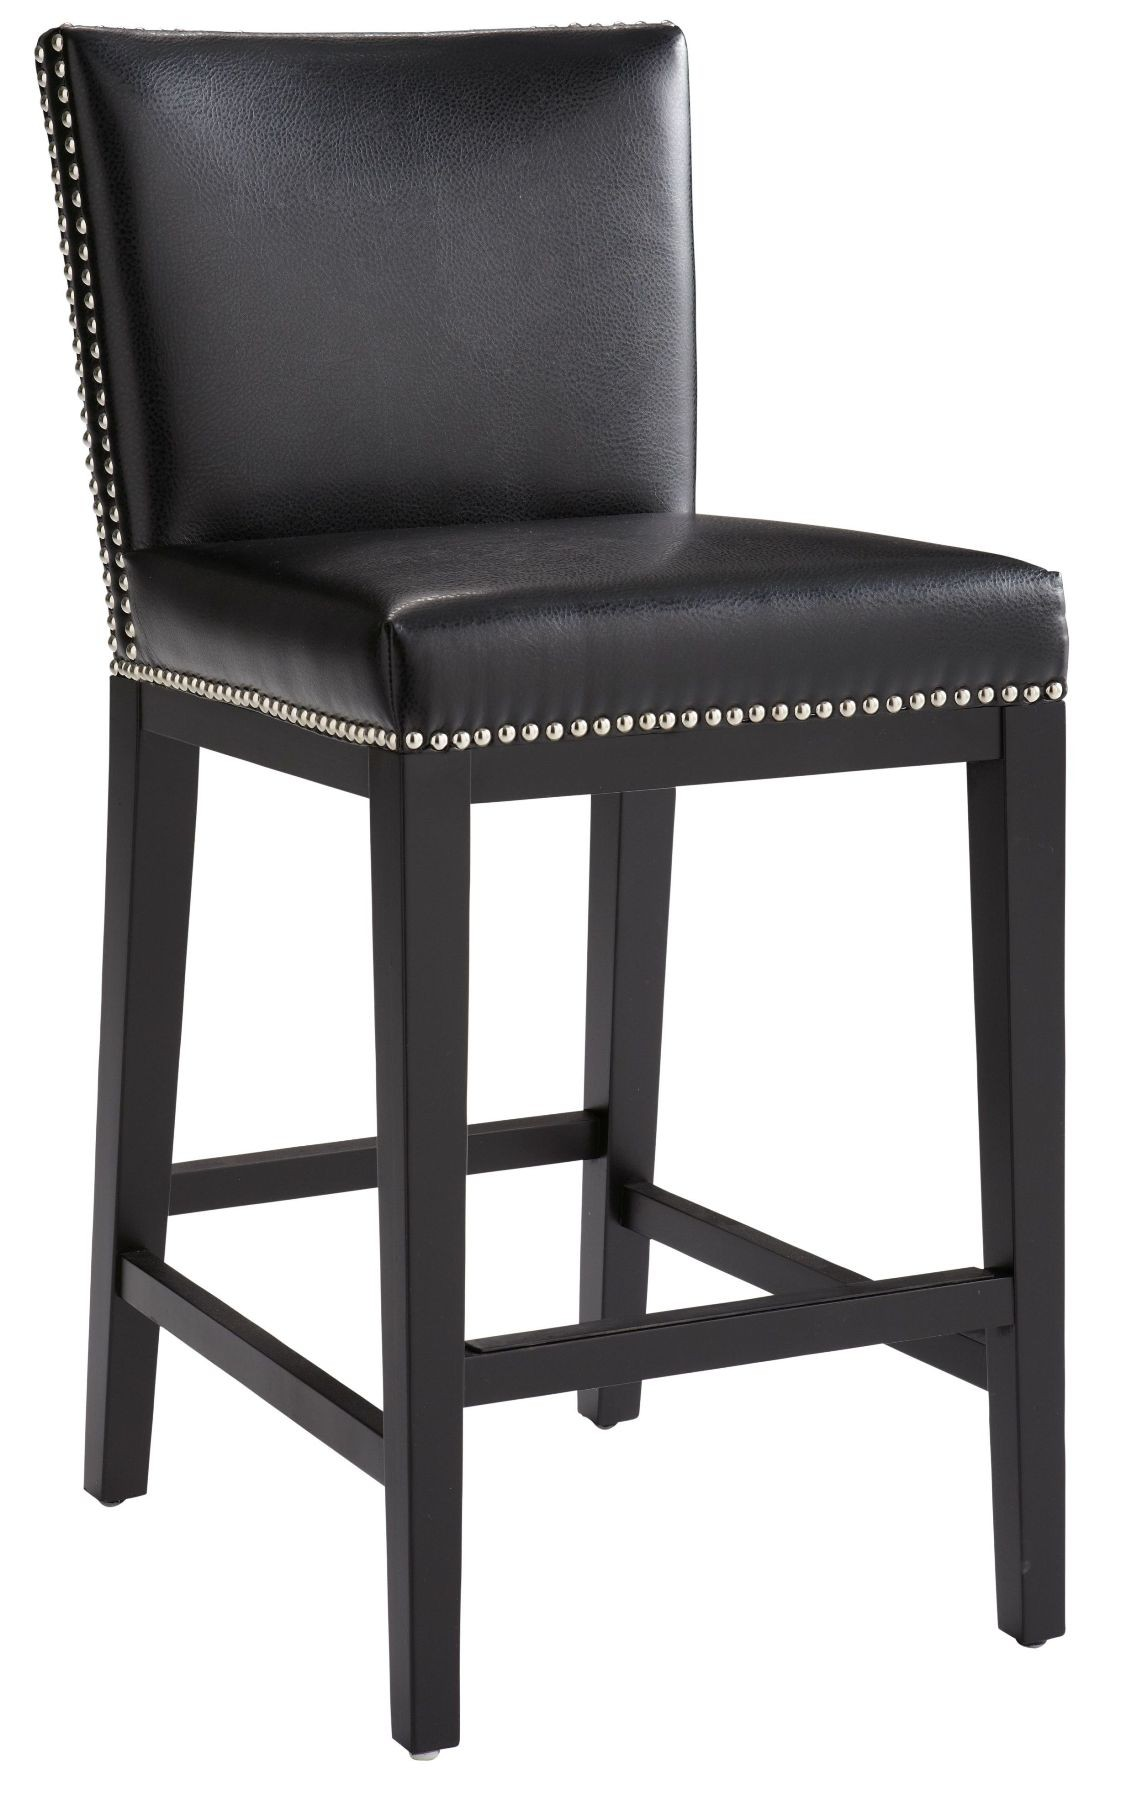 Vintage Black Leather Counter Stool From Sunpan 65872